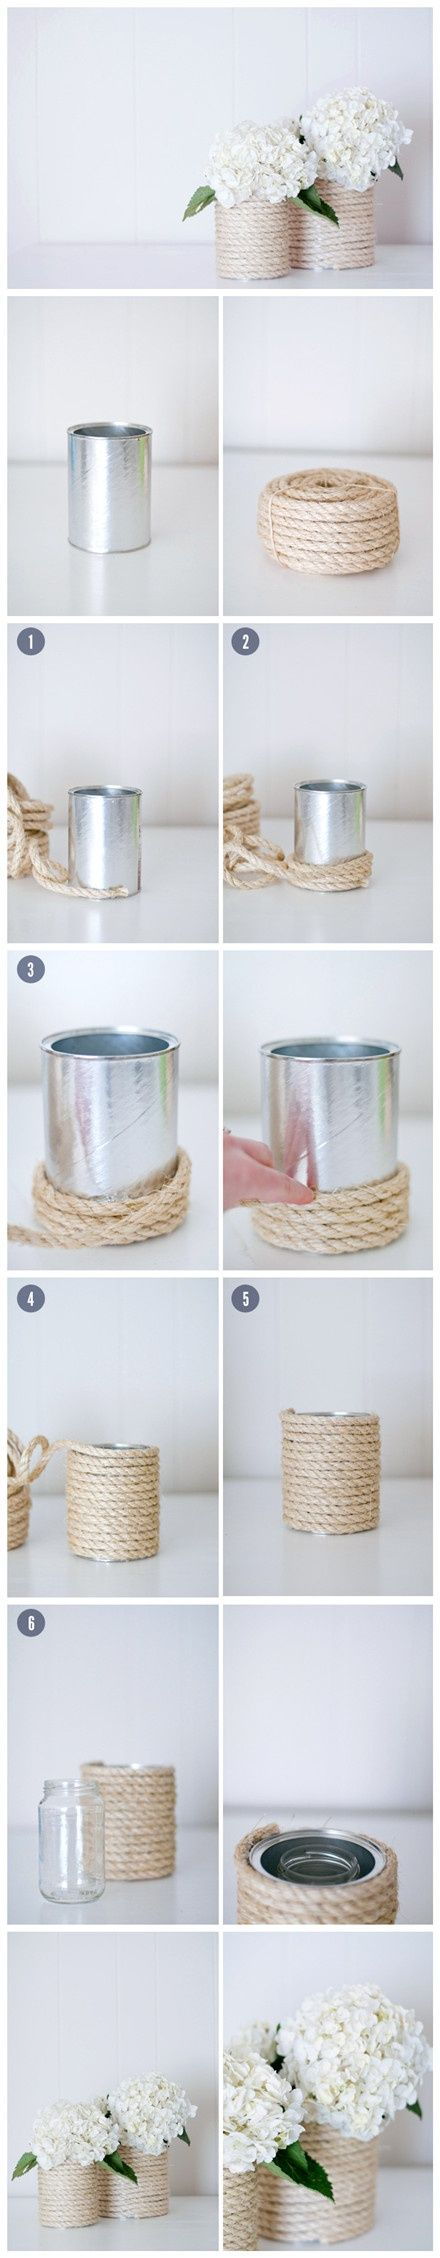 Rope covered coffee cans, jars, etc... nice to give something in